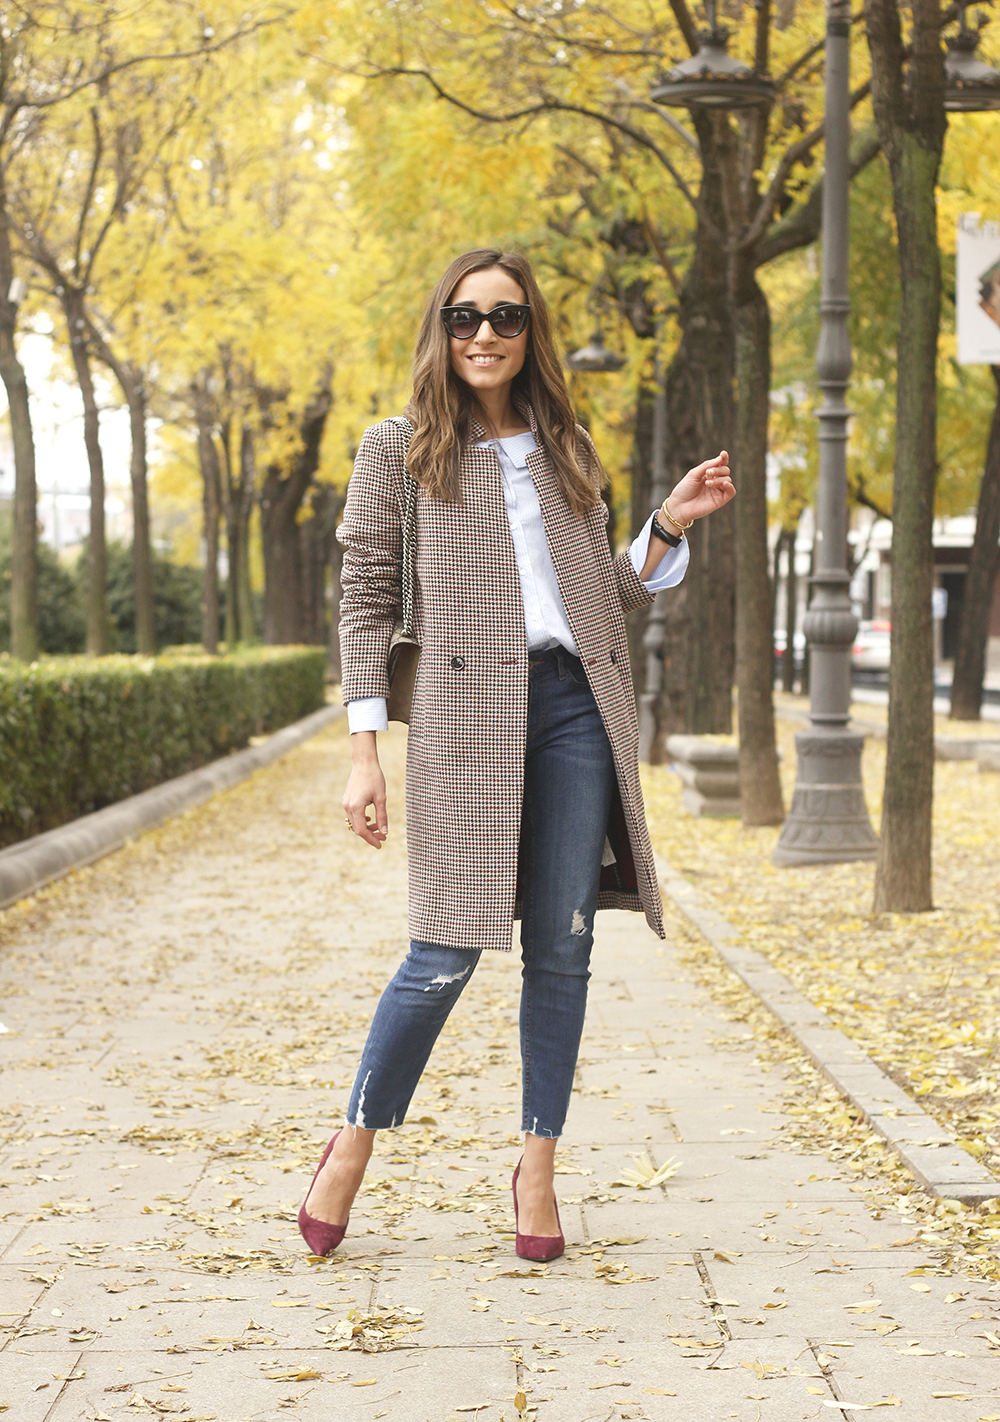 Houndstooth Coat striped shirt burgundy uterqüe heels gucci bag outfit style fashion06